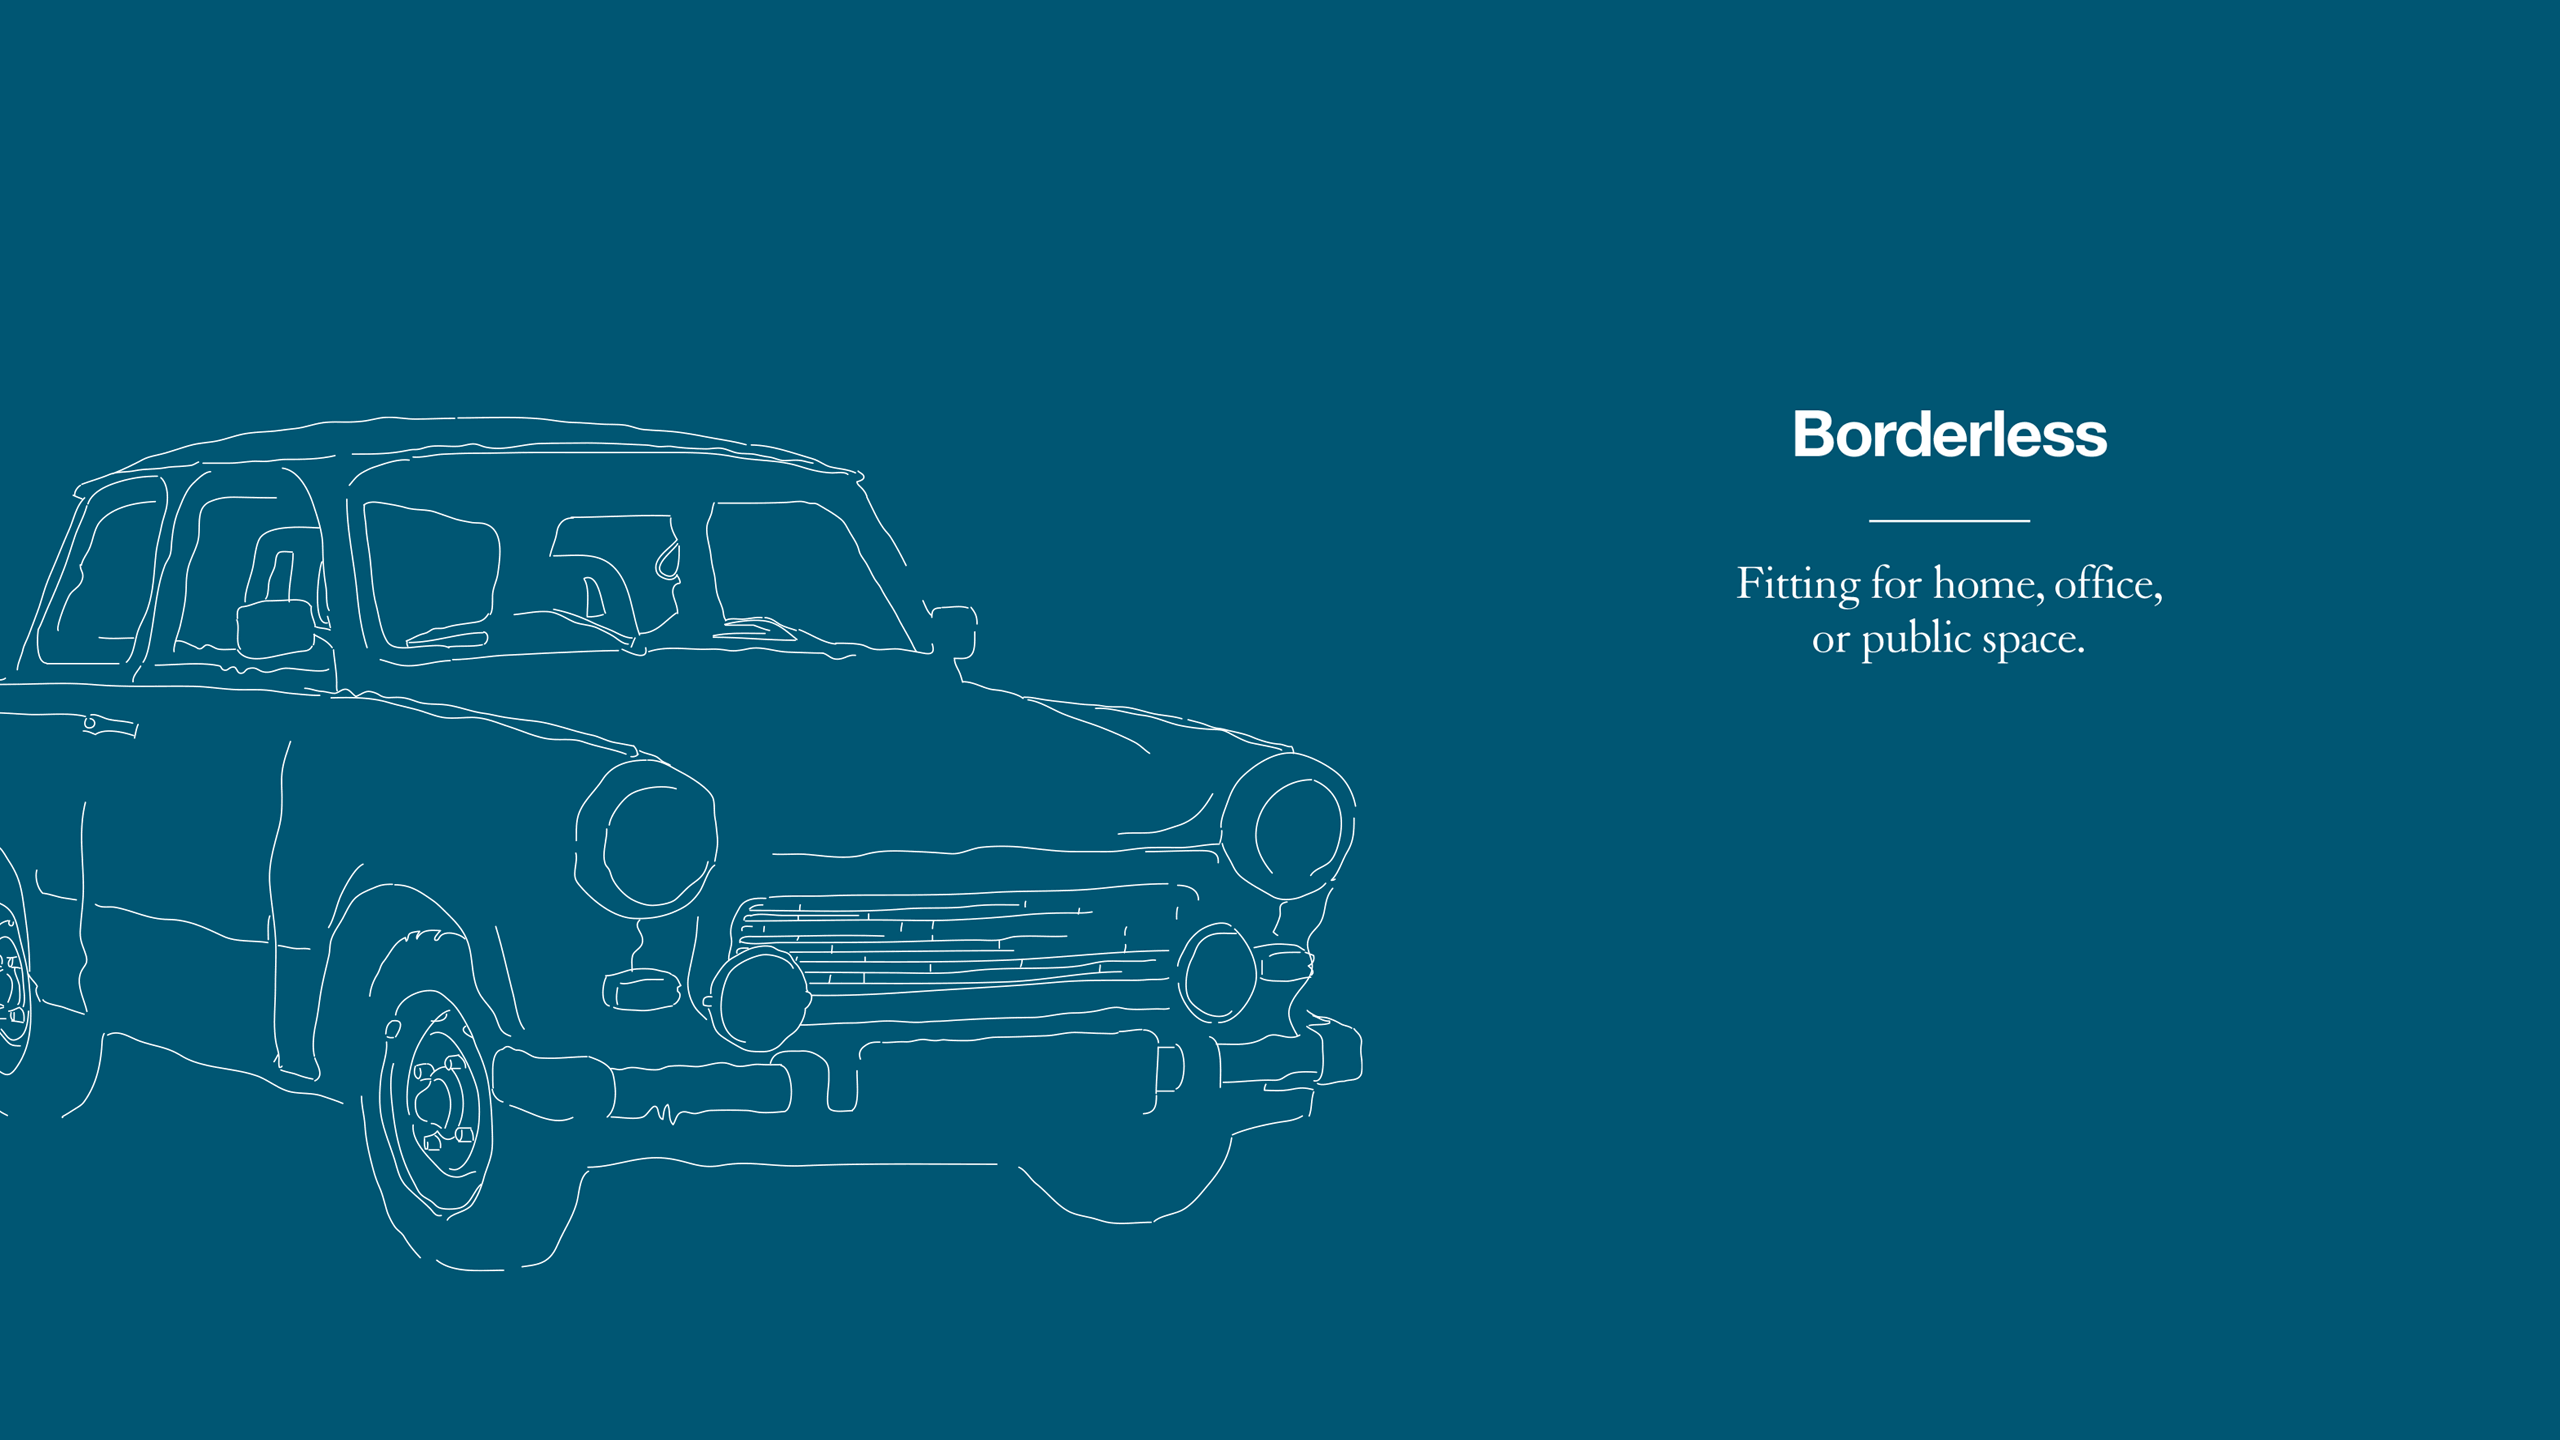 Coalesse Brand Refresh Illustration of borderless car with blue background